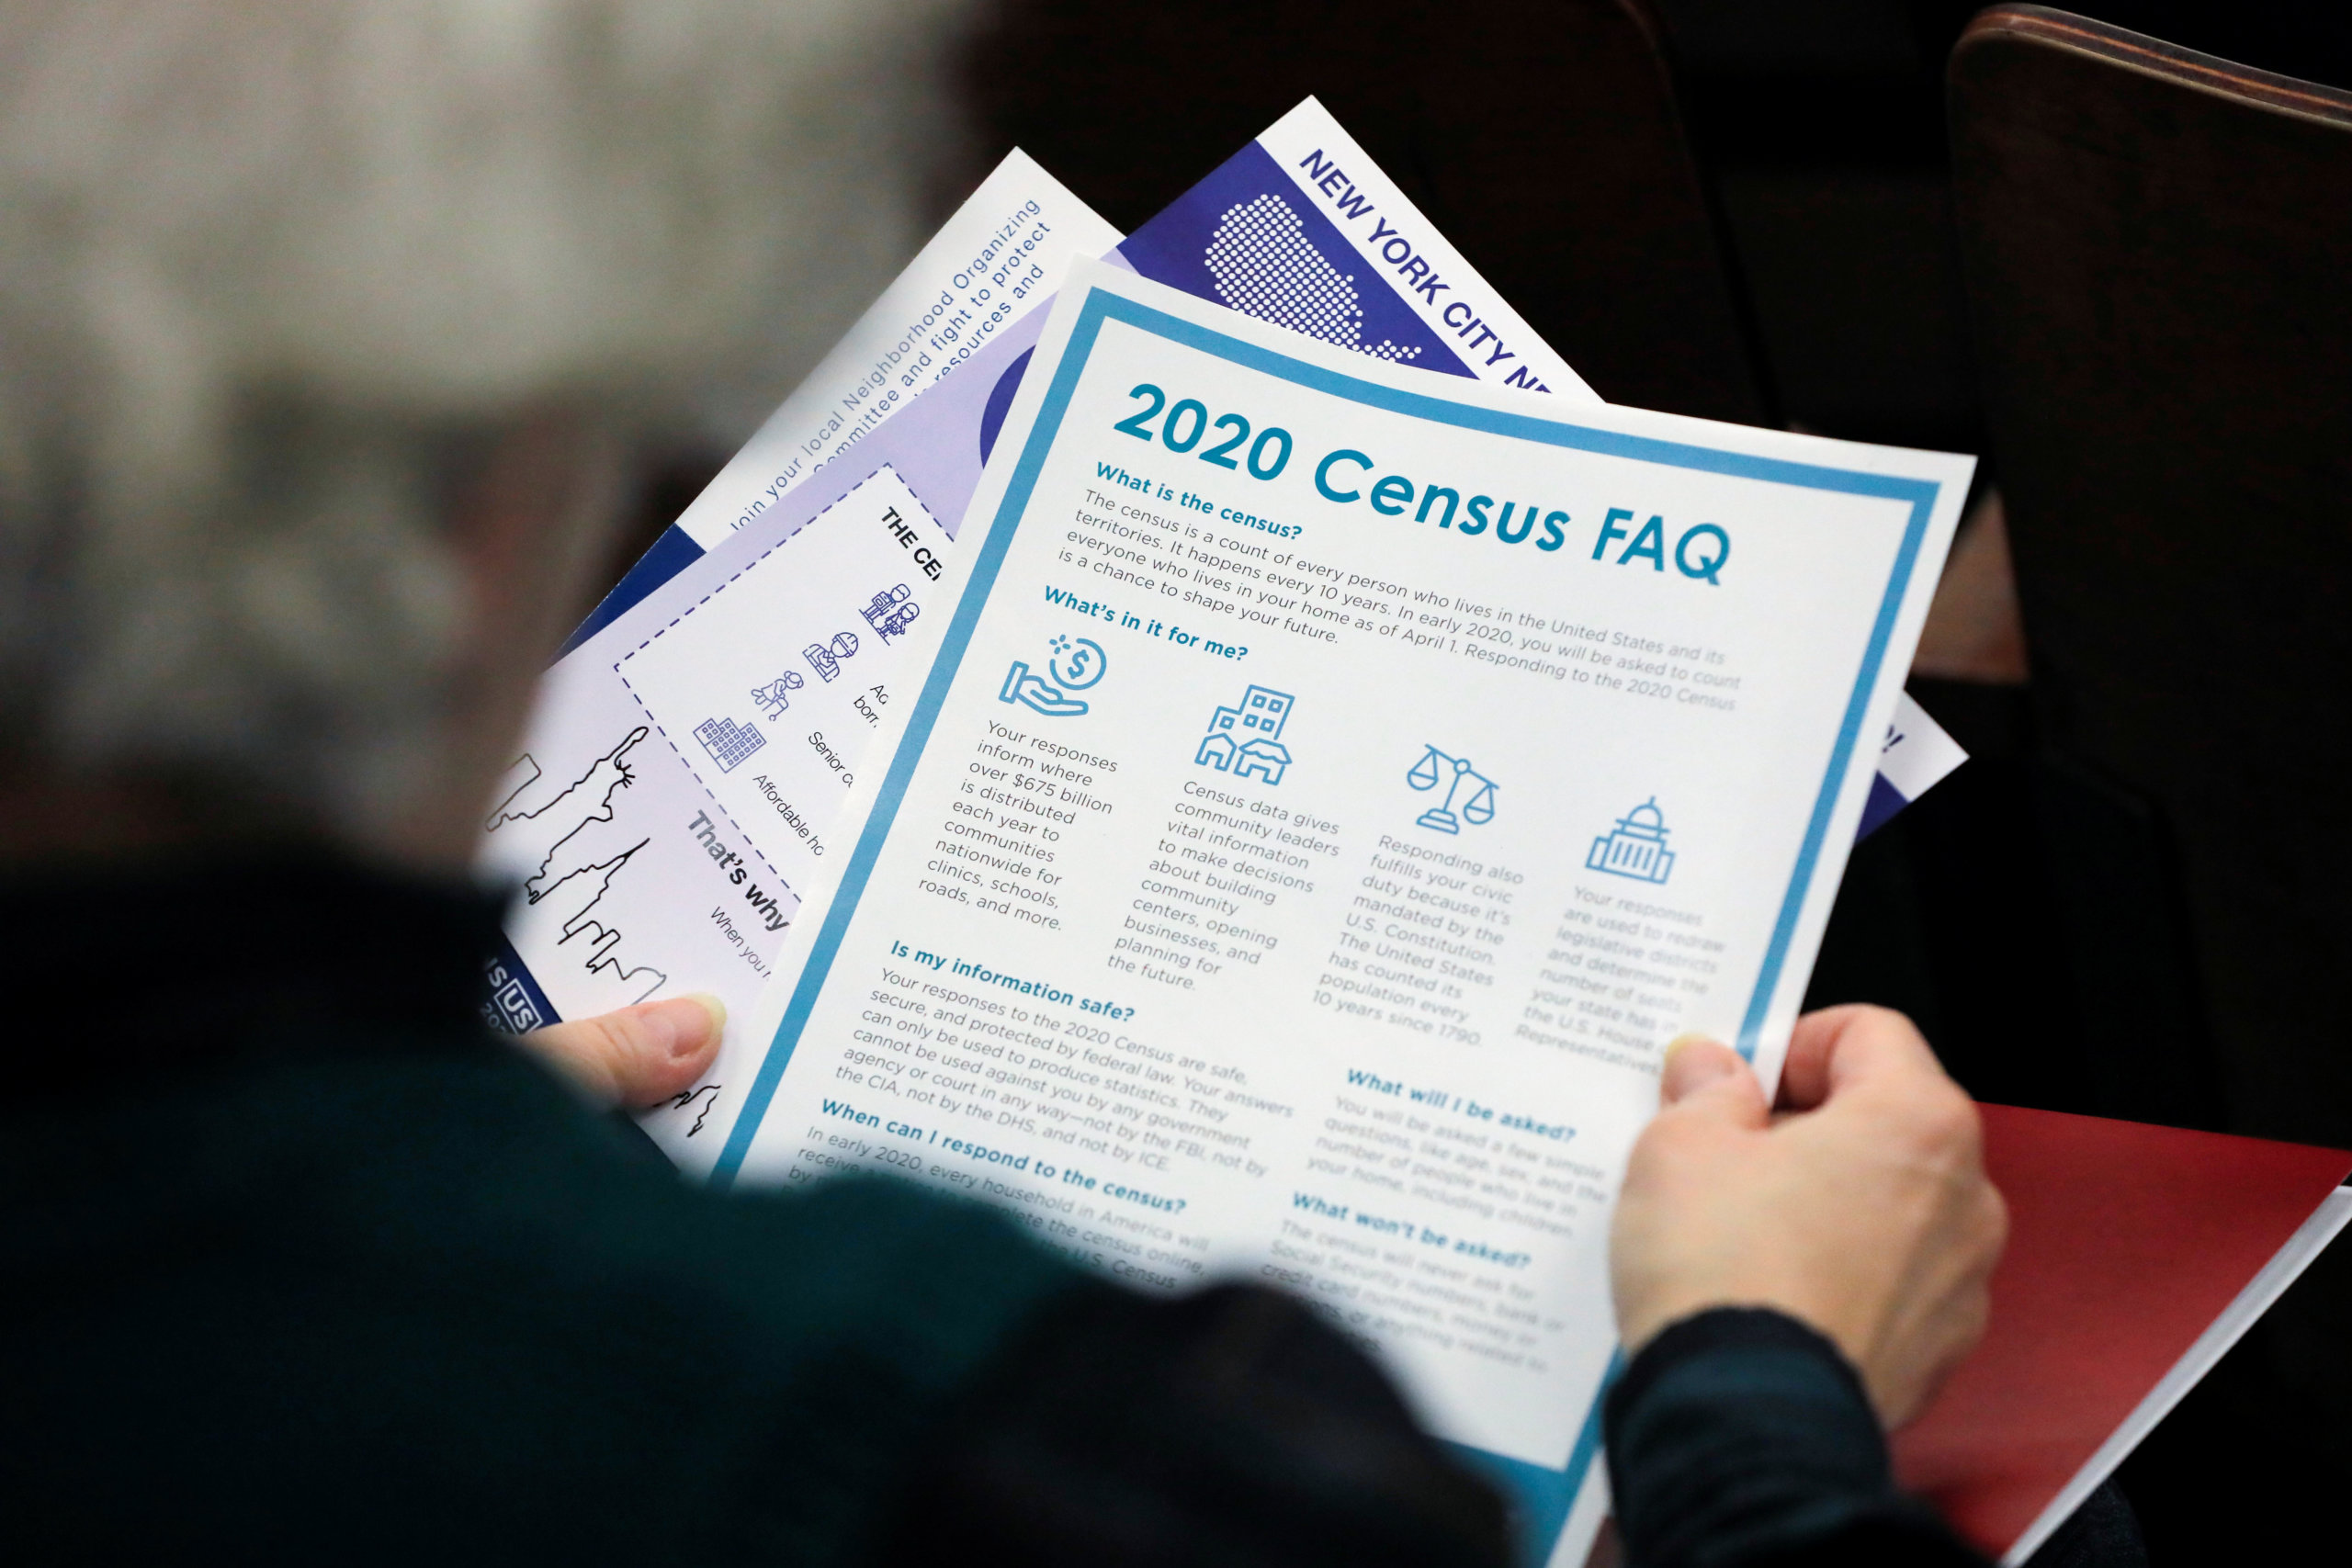 A person holds census information at an event where U.S. Rep. Alexandria Ocasio-Cortez (D-NY) spoke at a Census Town Hall at the Louis Armstrong Middle School in Queens, New York City, U.S., February 22, 2020.